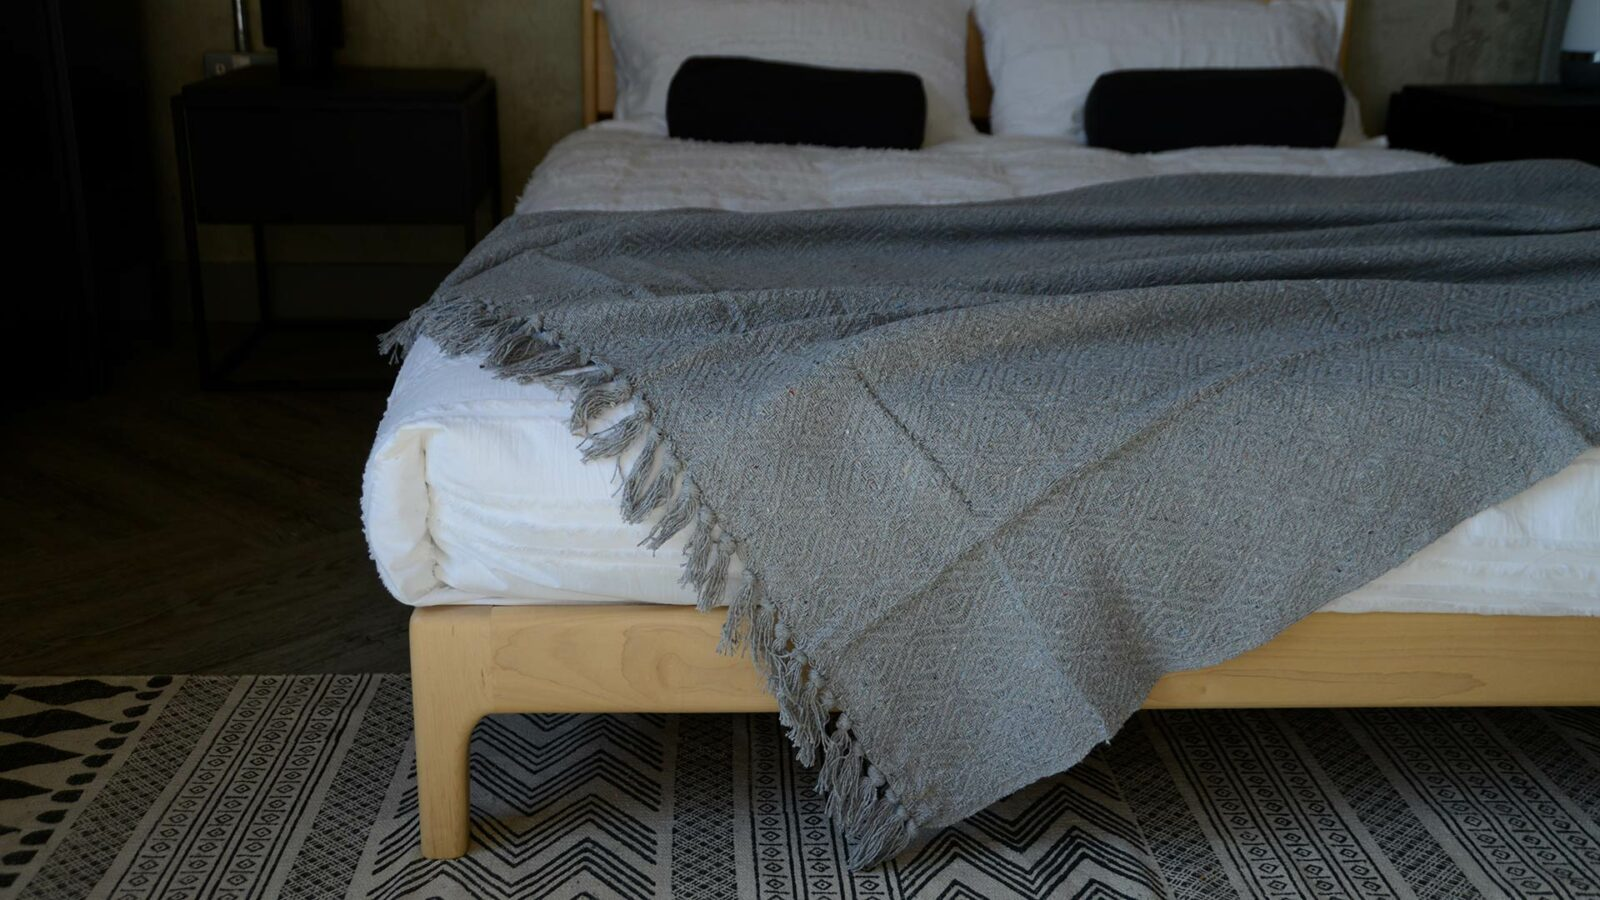 silver grey diamond weave cotton rich throw shown on a kingsize wooden bed